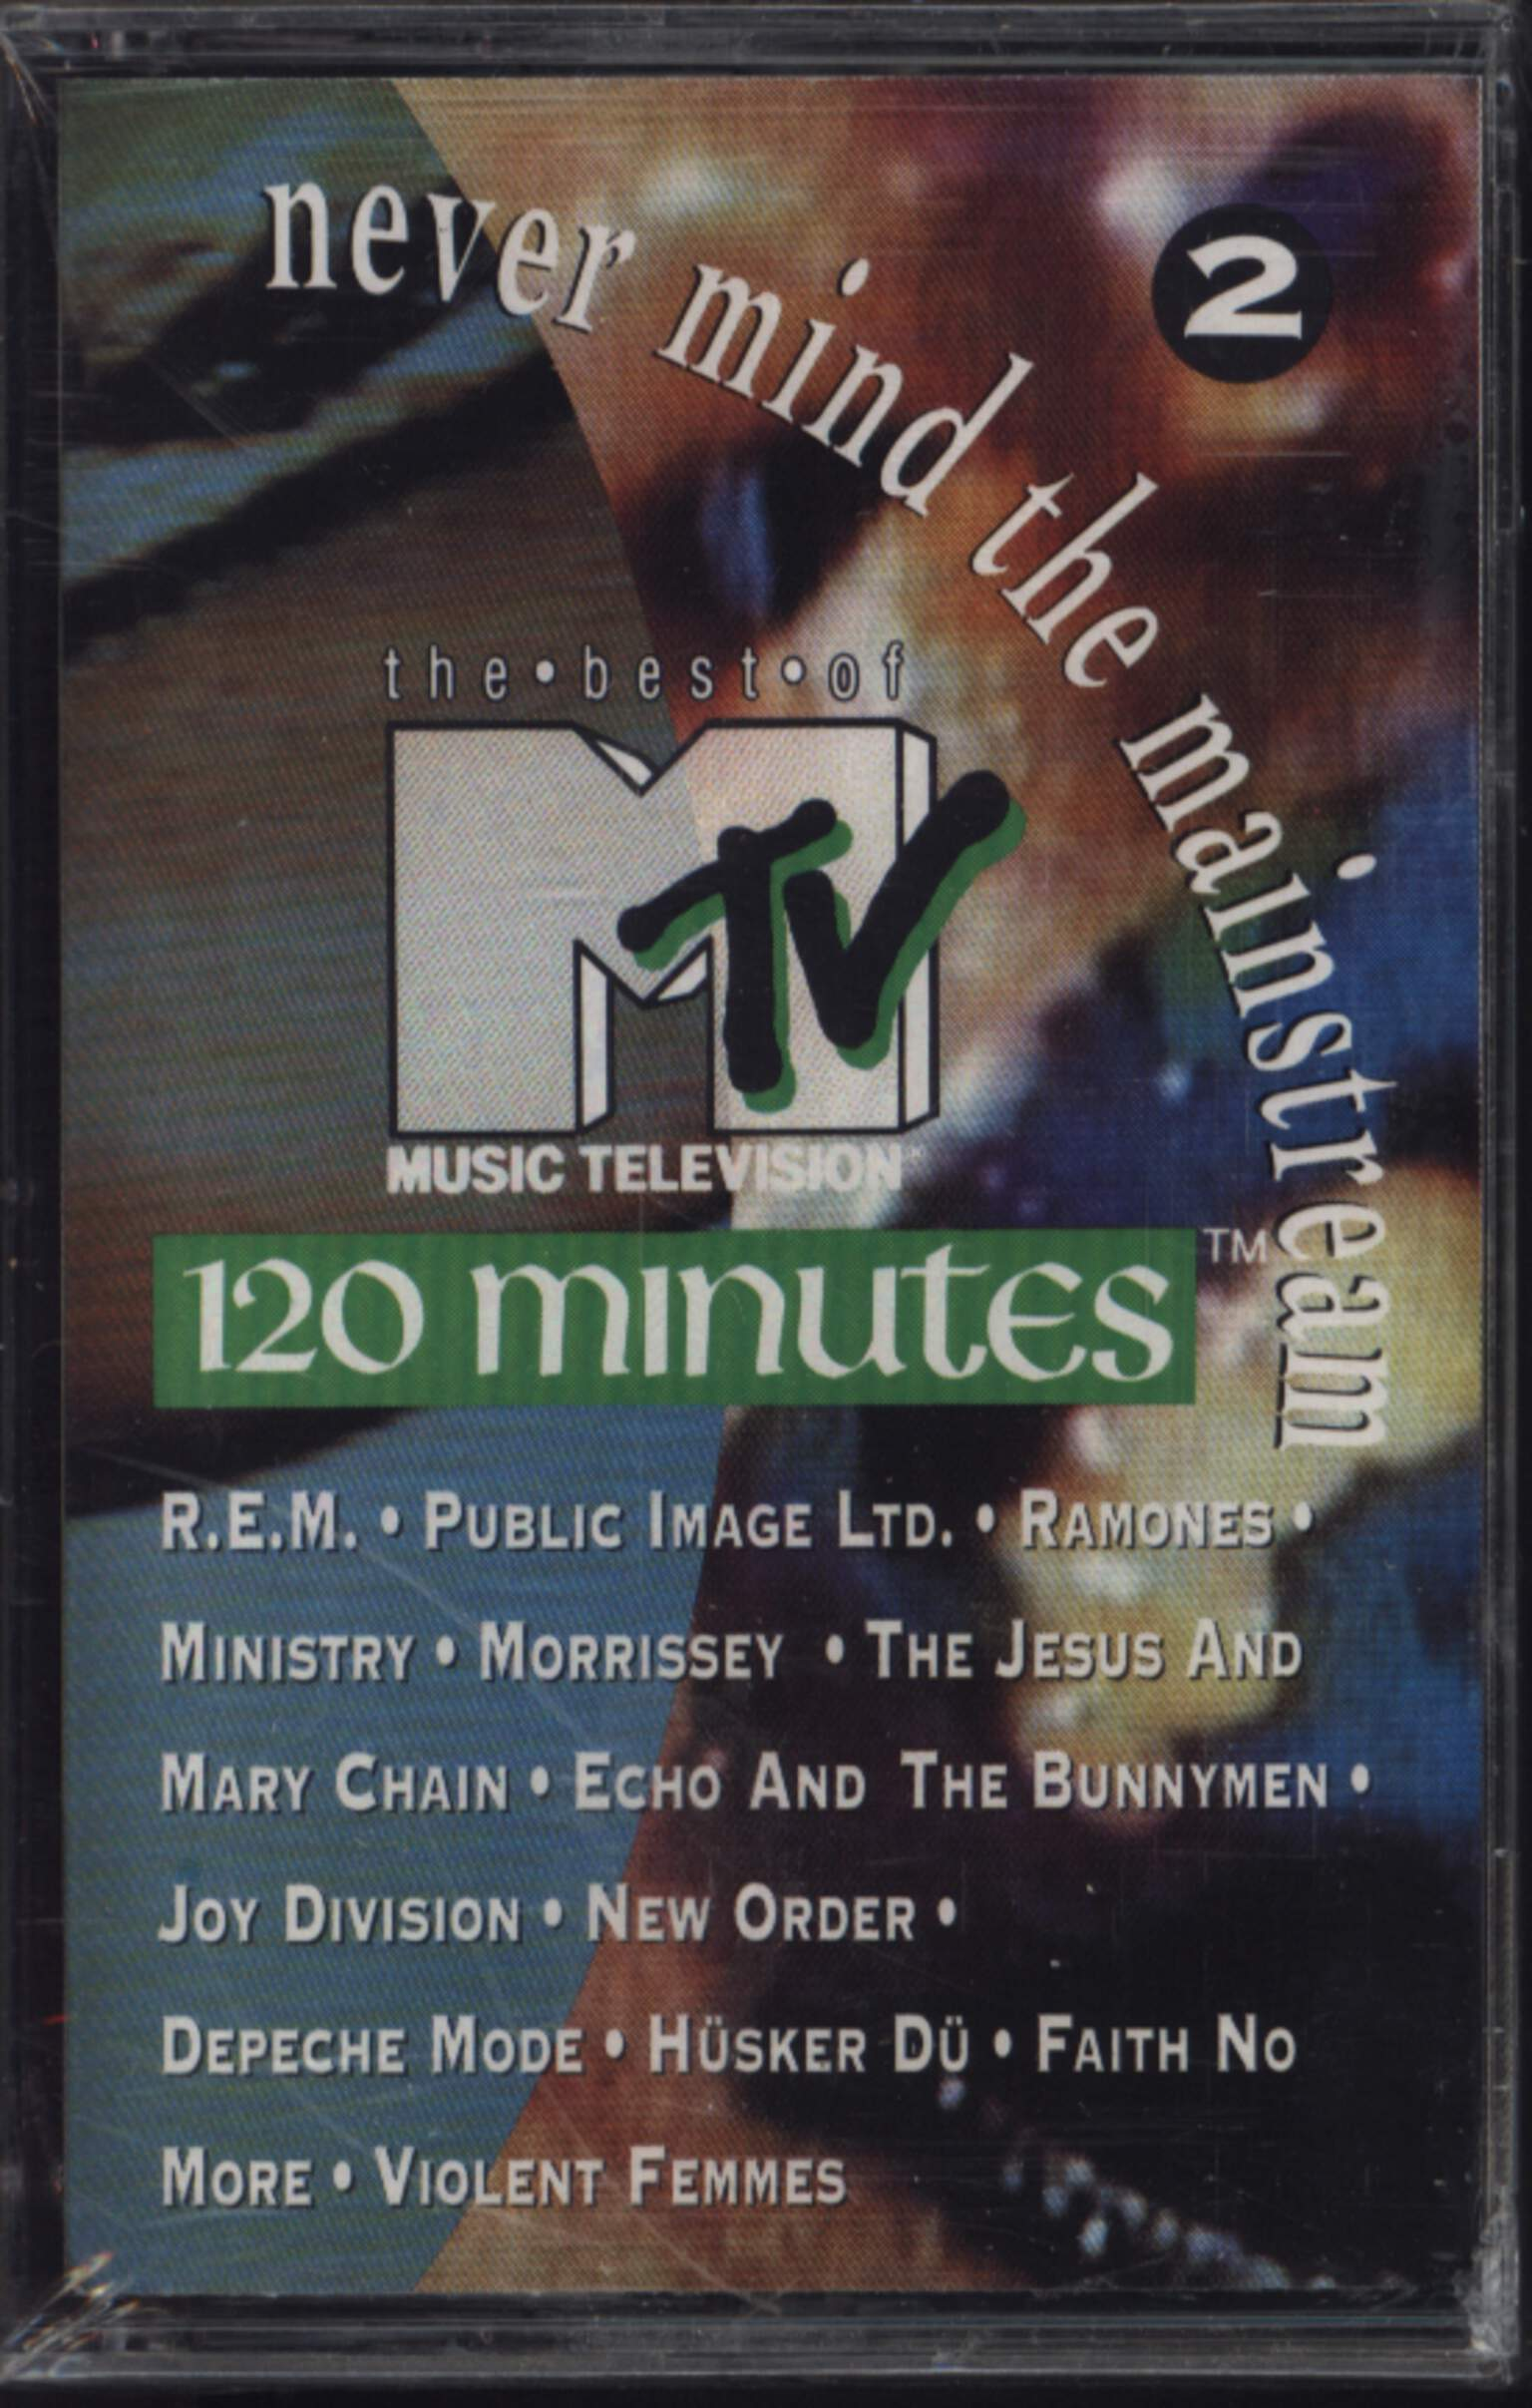 Various: Never Mind The Mainstream...The Best Of MTV's 120 Minutes Vol. 2, Compact Cassette